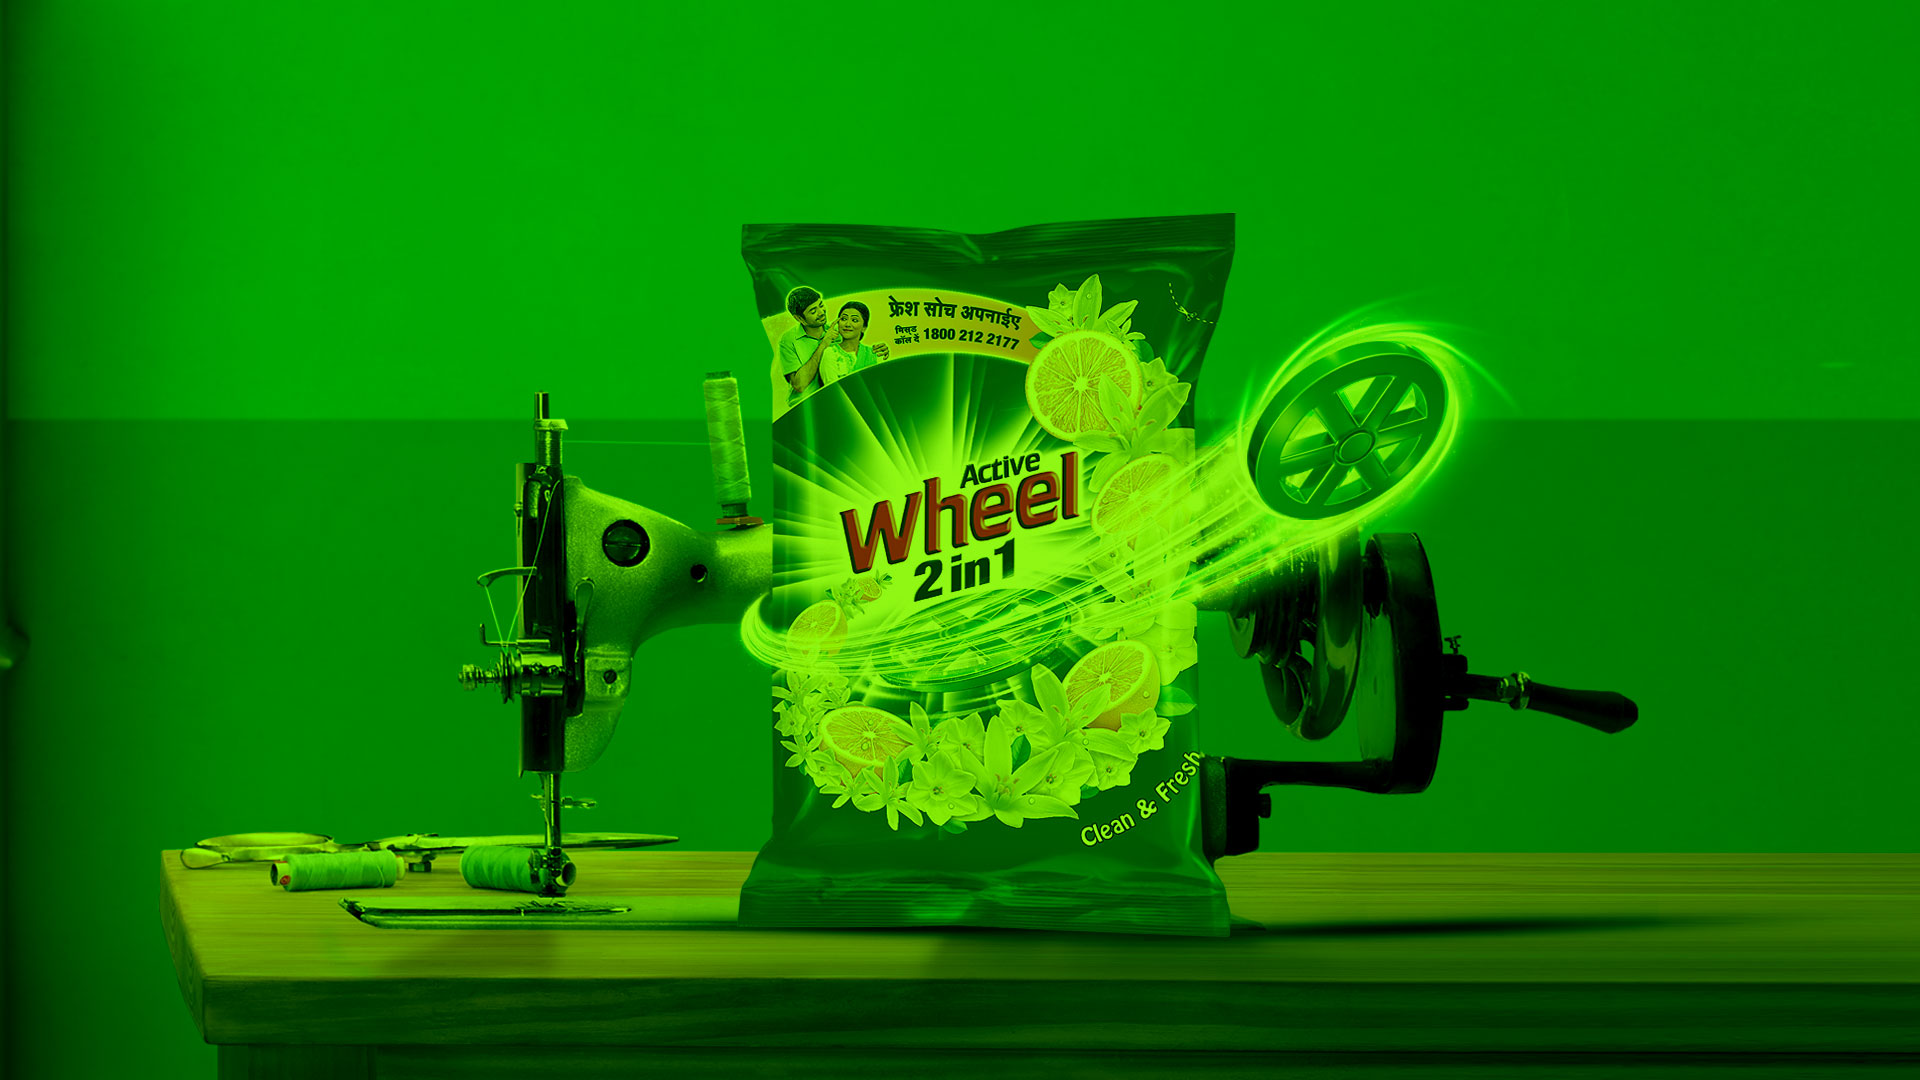 Active Wheel Advertising communication on packaging